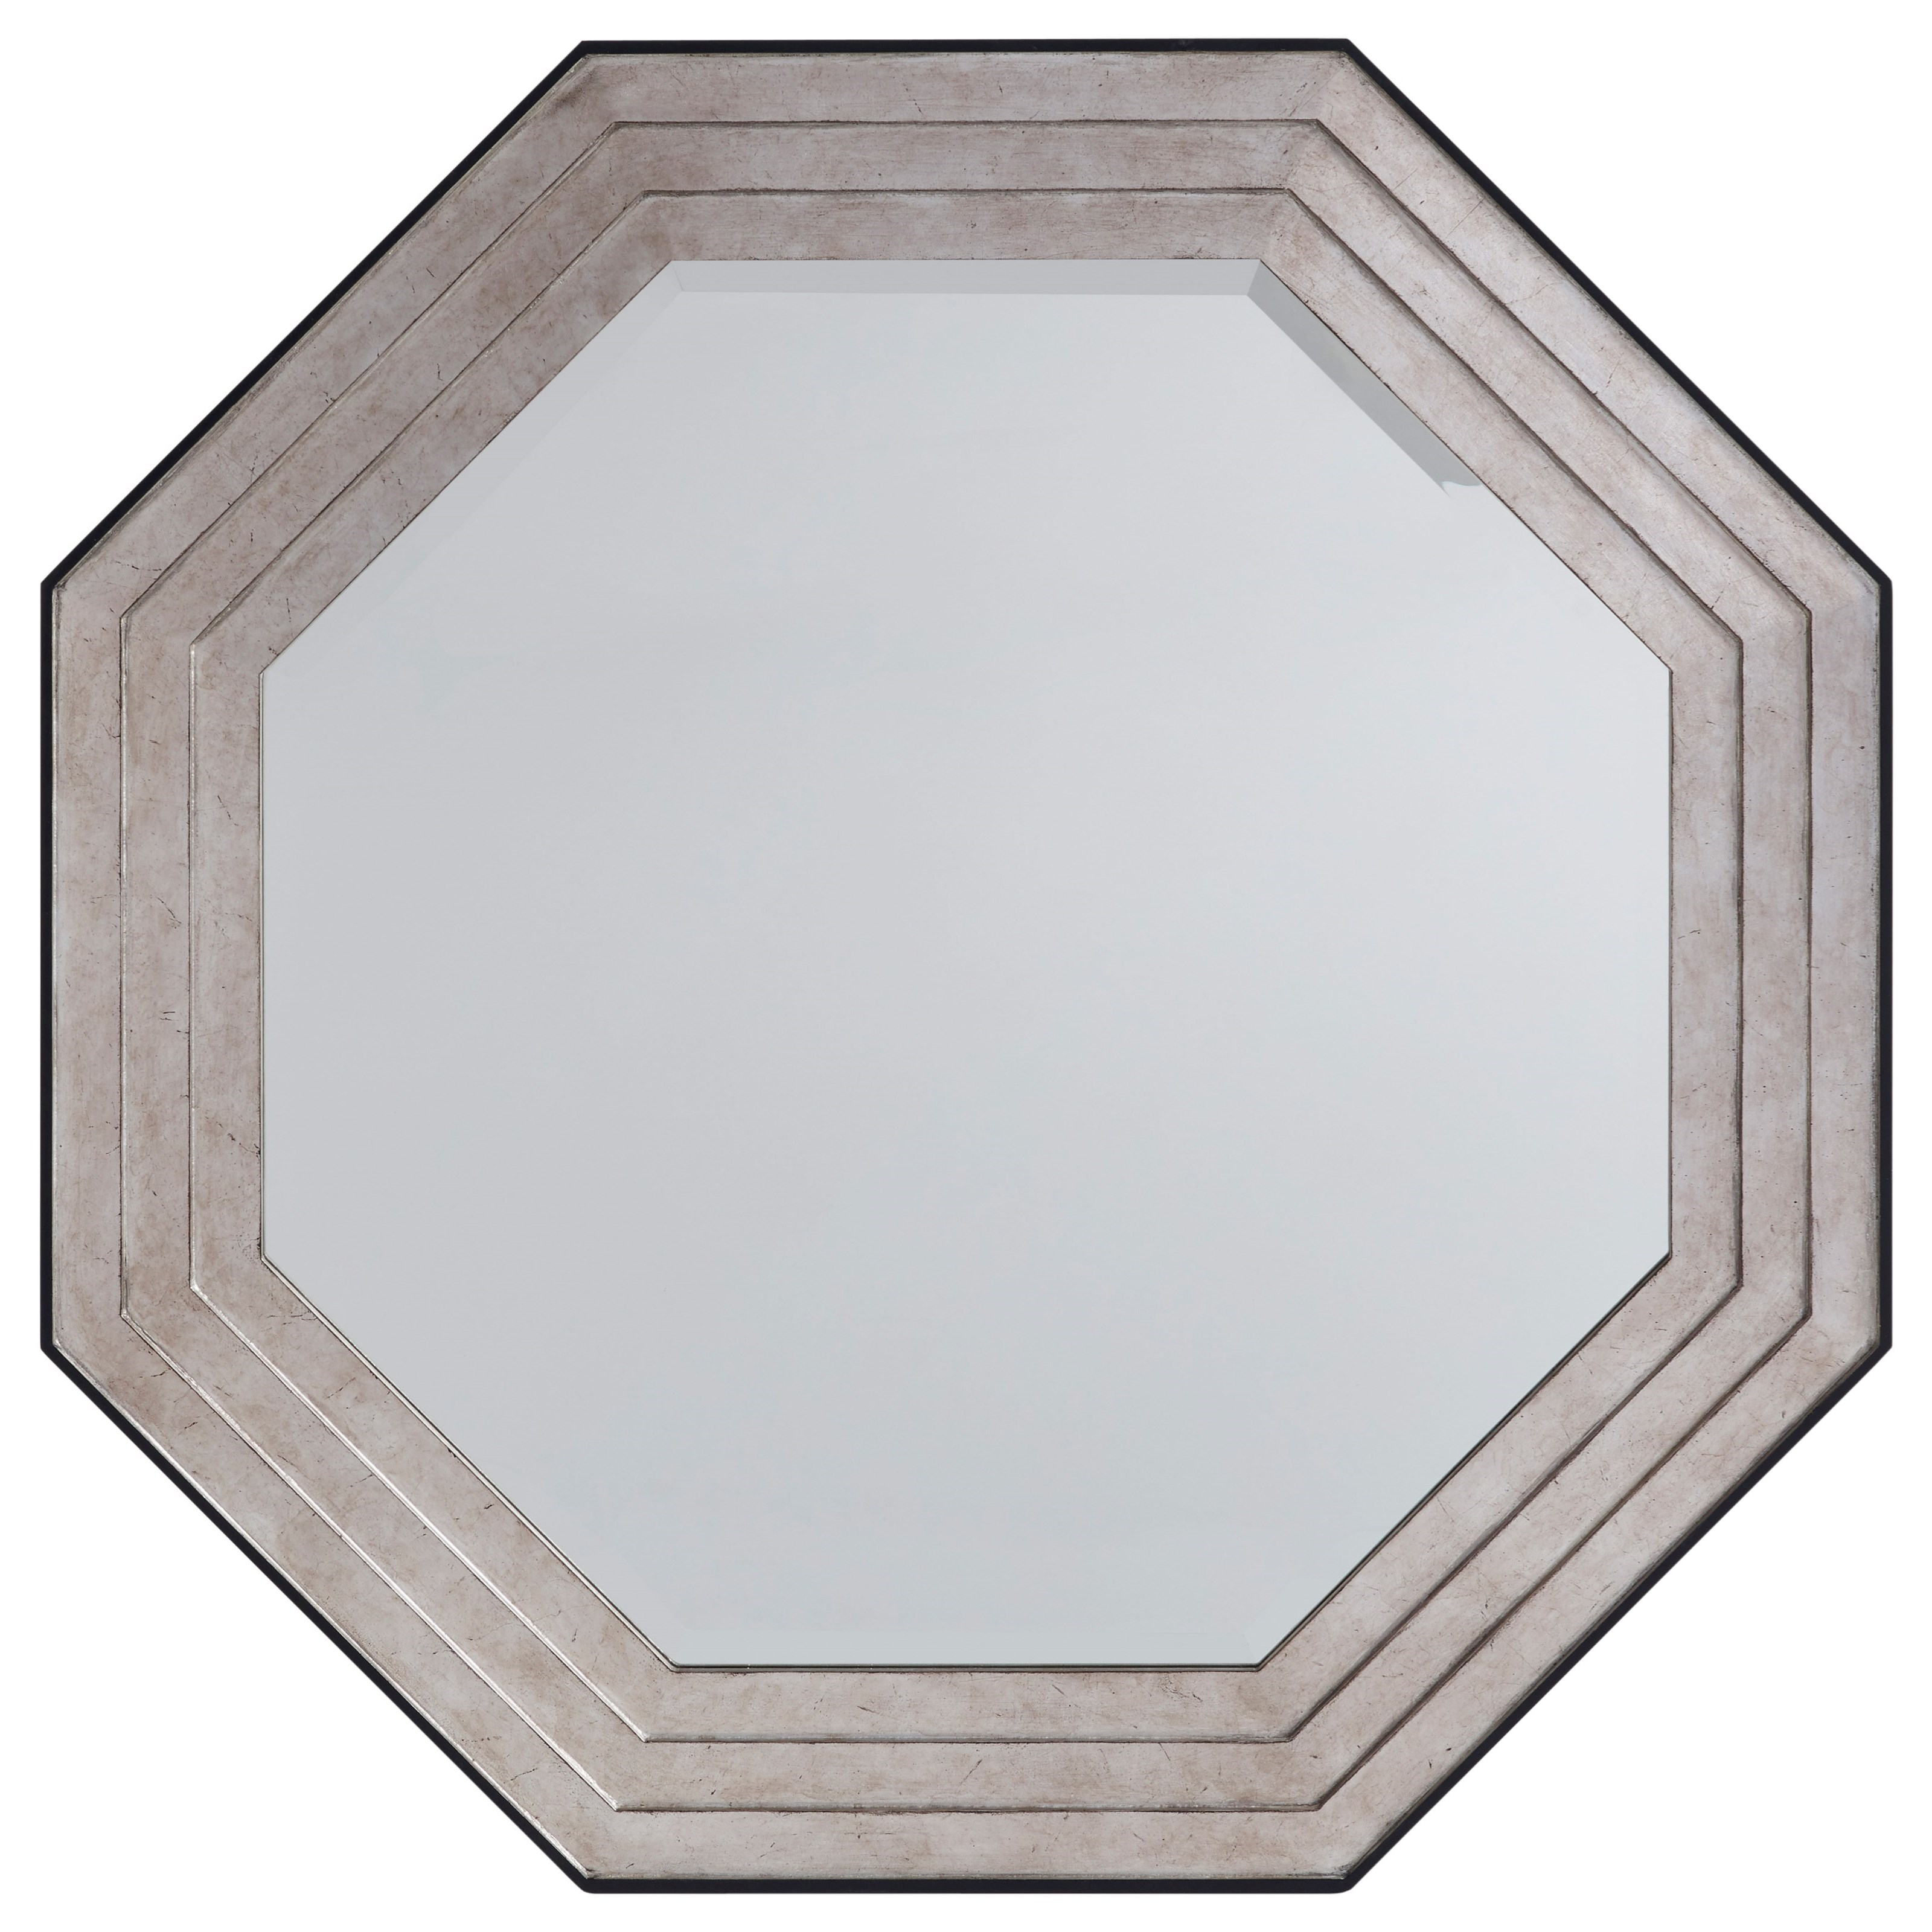 Ariana Latour Octagonal Mirror by Lexington at Baer's Furniture